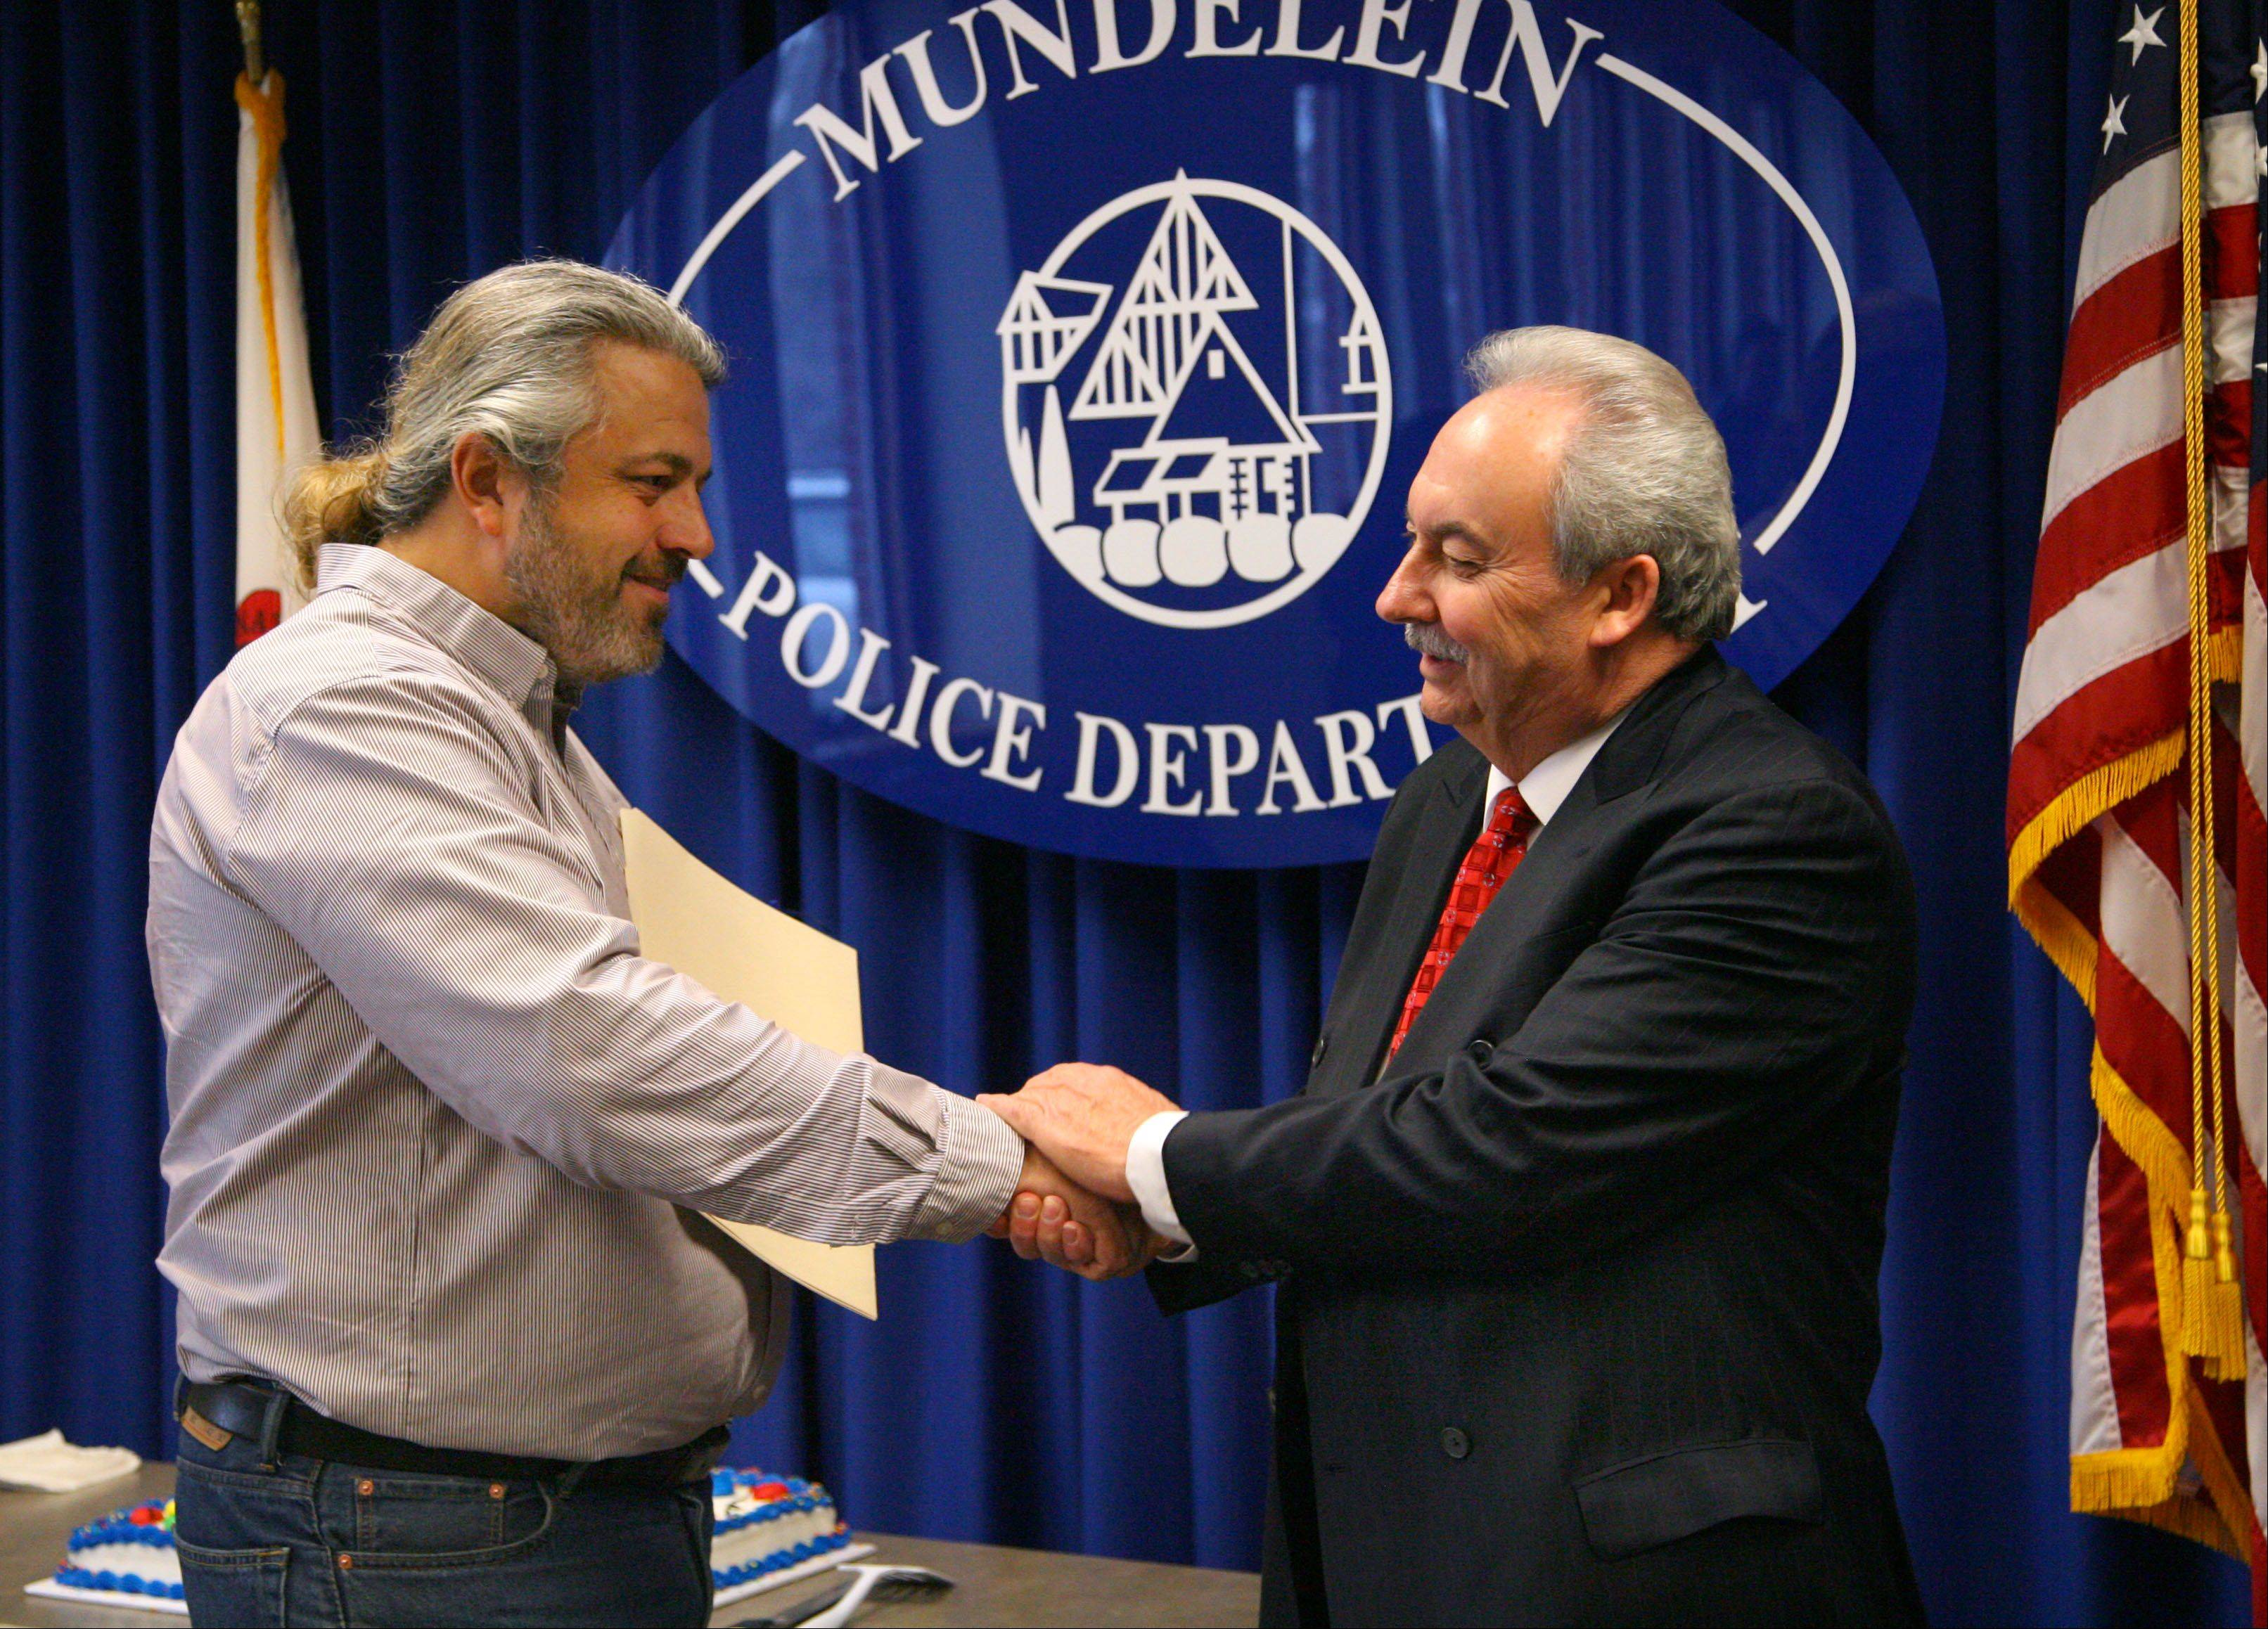 Mundelein Mayor Kenneth H. Kessler, left, shakes hands with outgoing Police Chief Raymond J. Rose on his last official day on the job during a retirement ceremony at the police station Thursday.